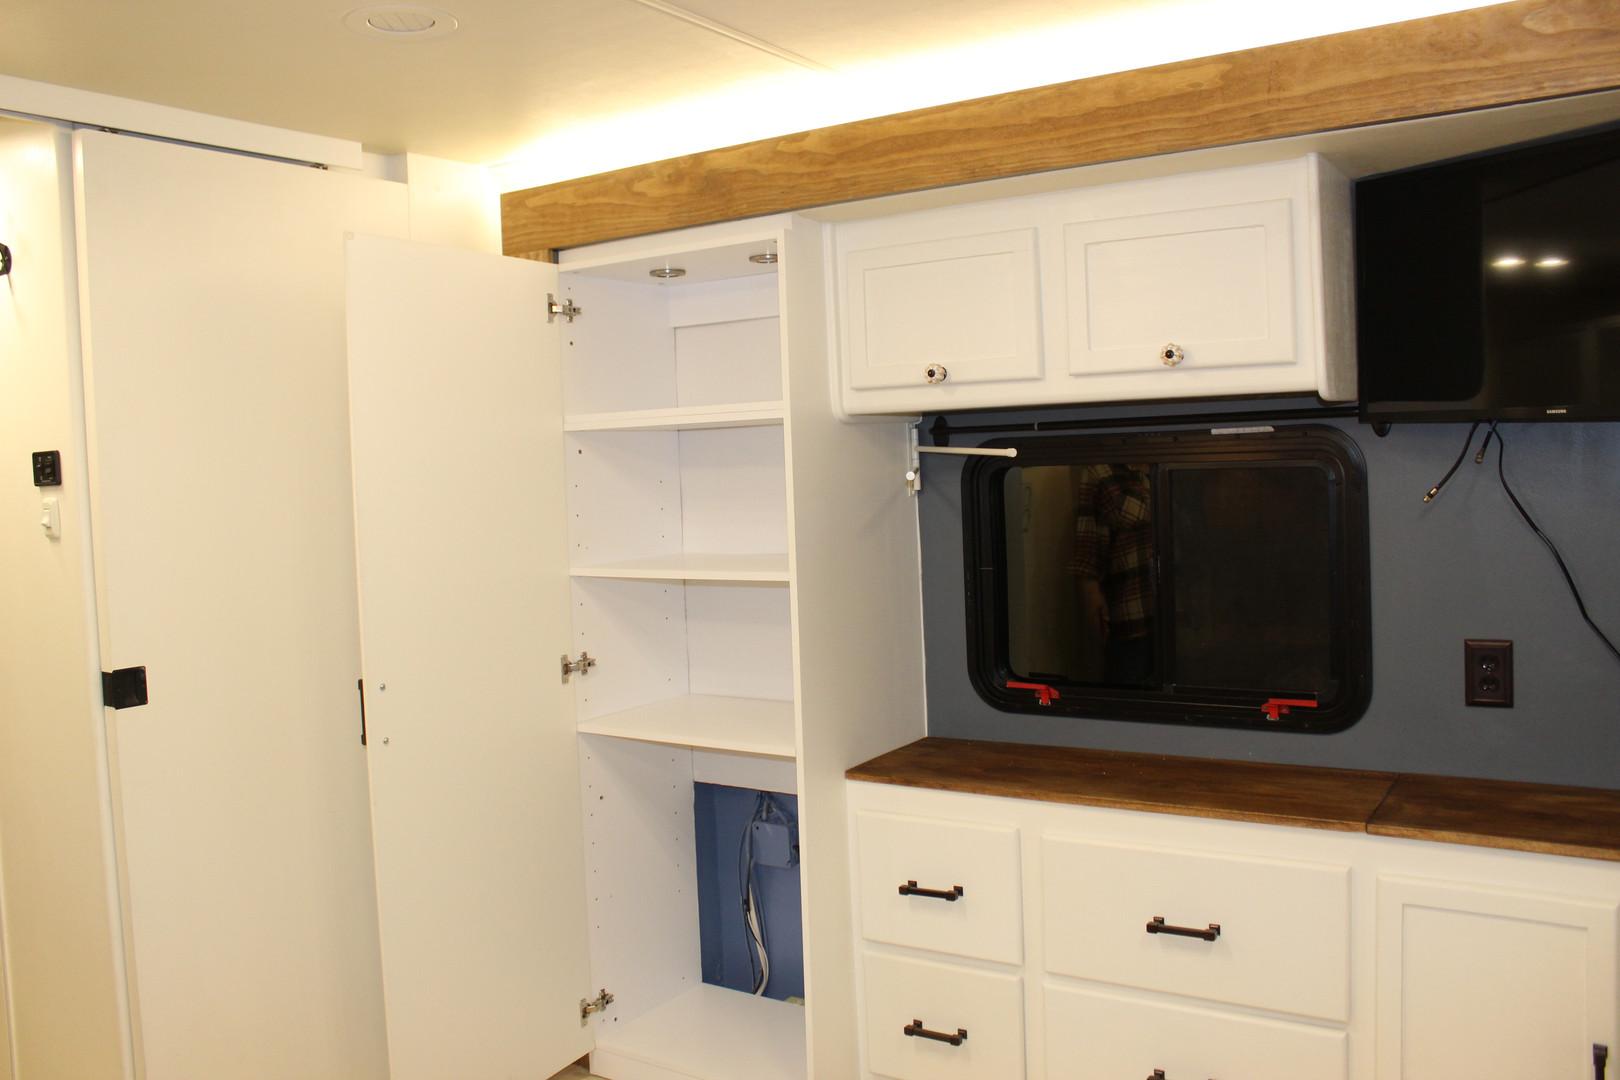 After - Bedroom Storage with Lighting and Power Supplies for Mobile Office